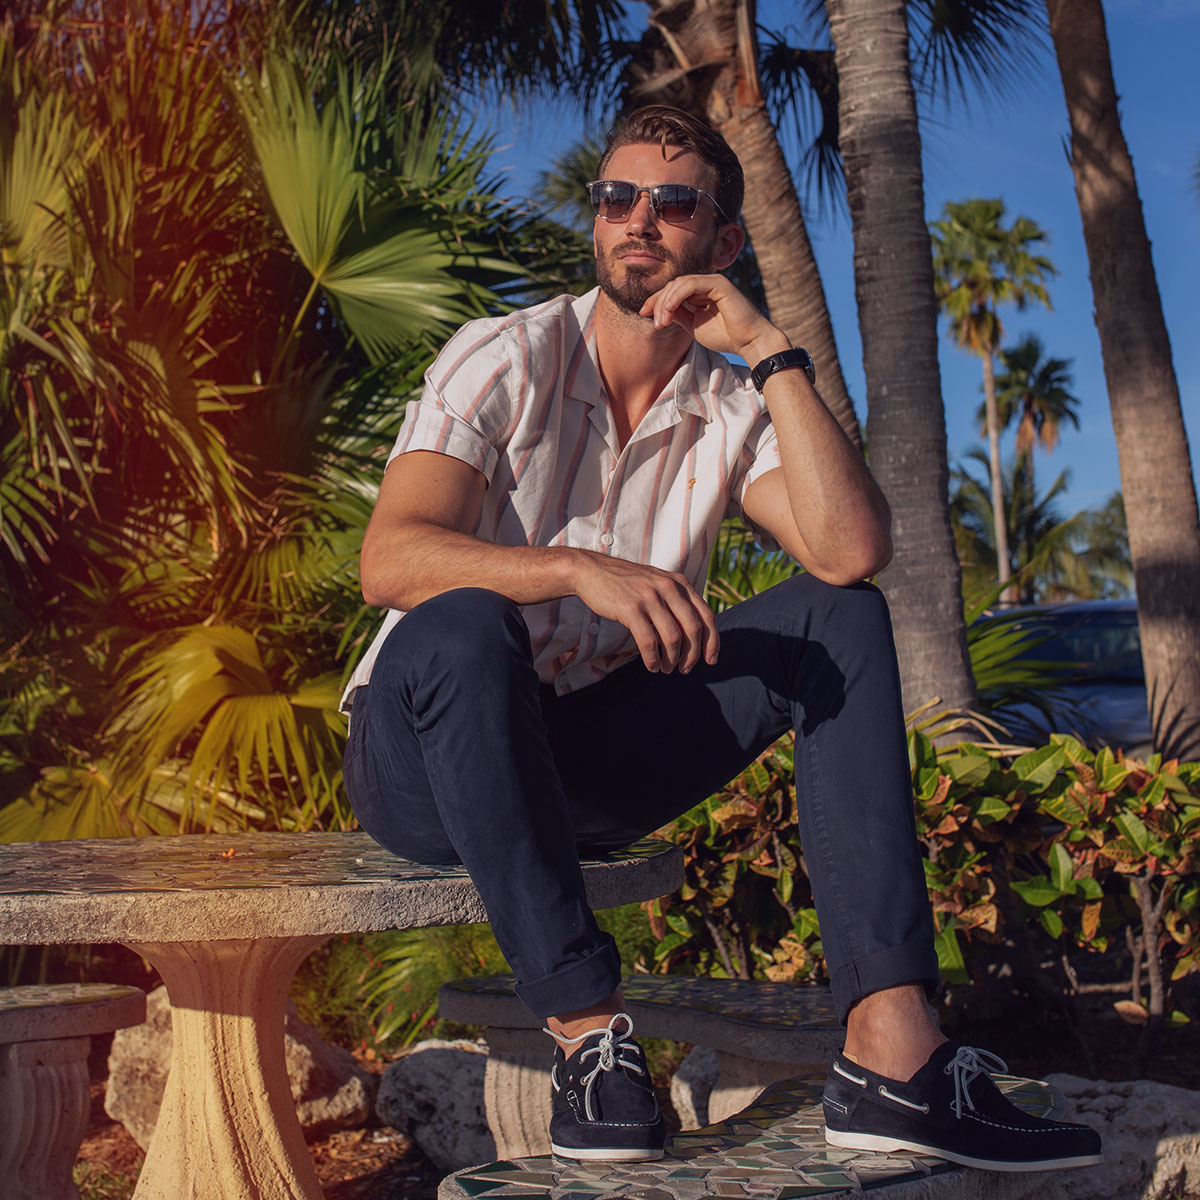 A man sat on a bench in Miami wearing a cuban collar shirt, some relaxed chinos and a pair of diver shoes